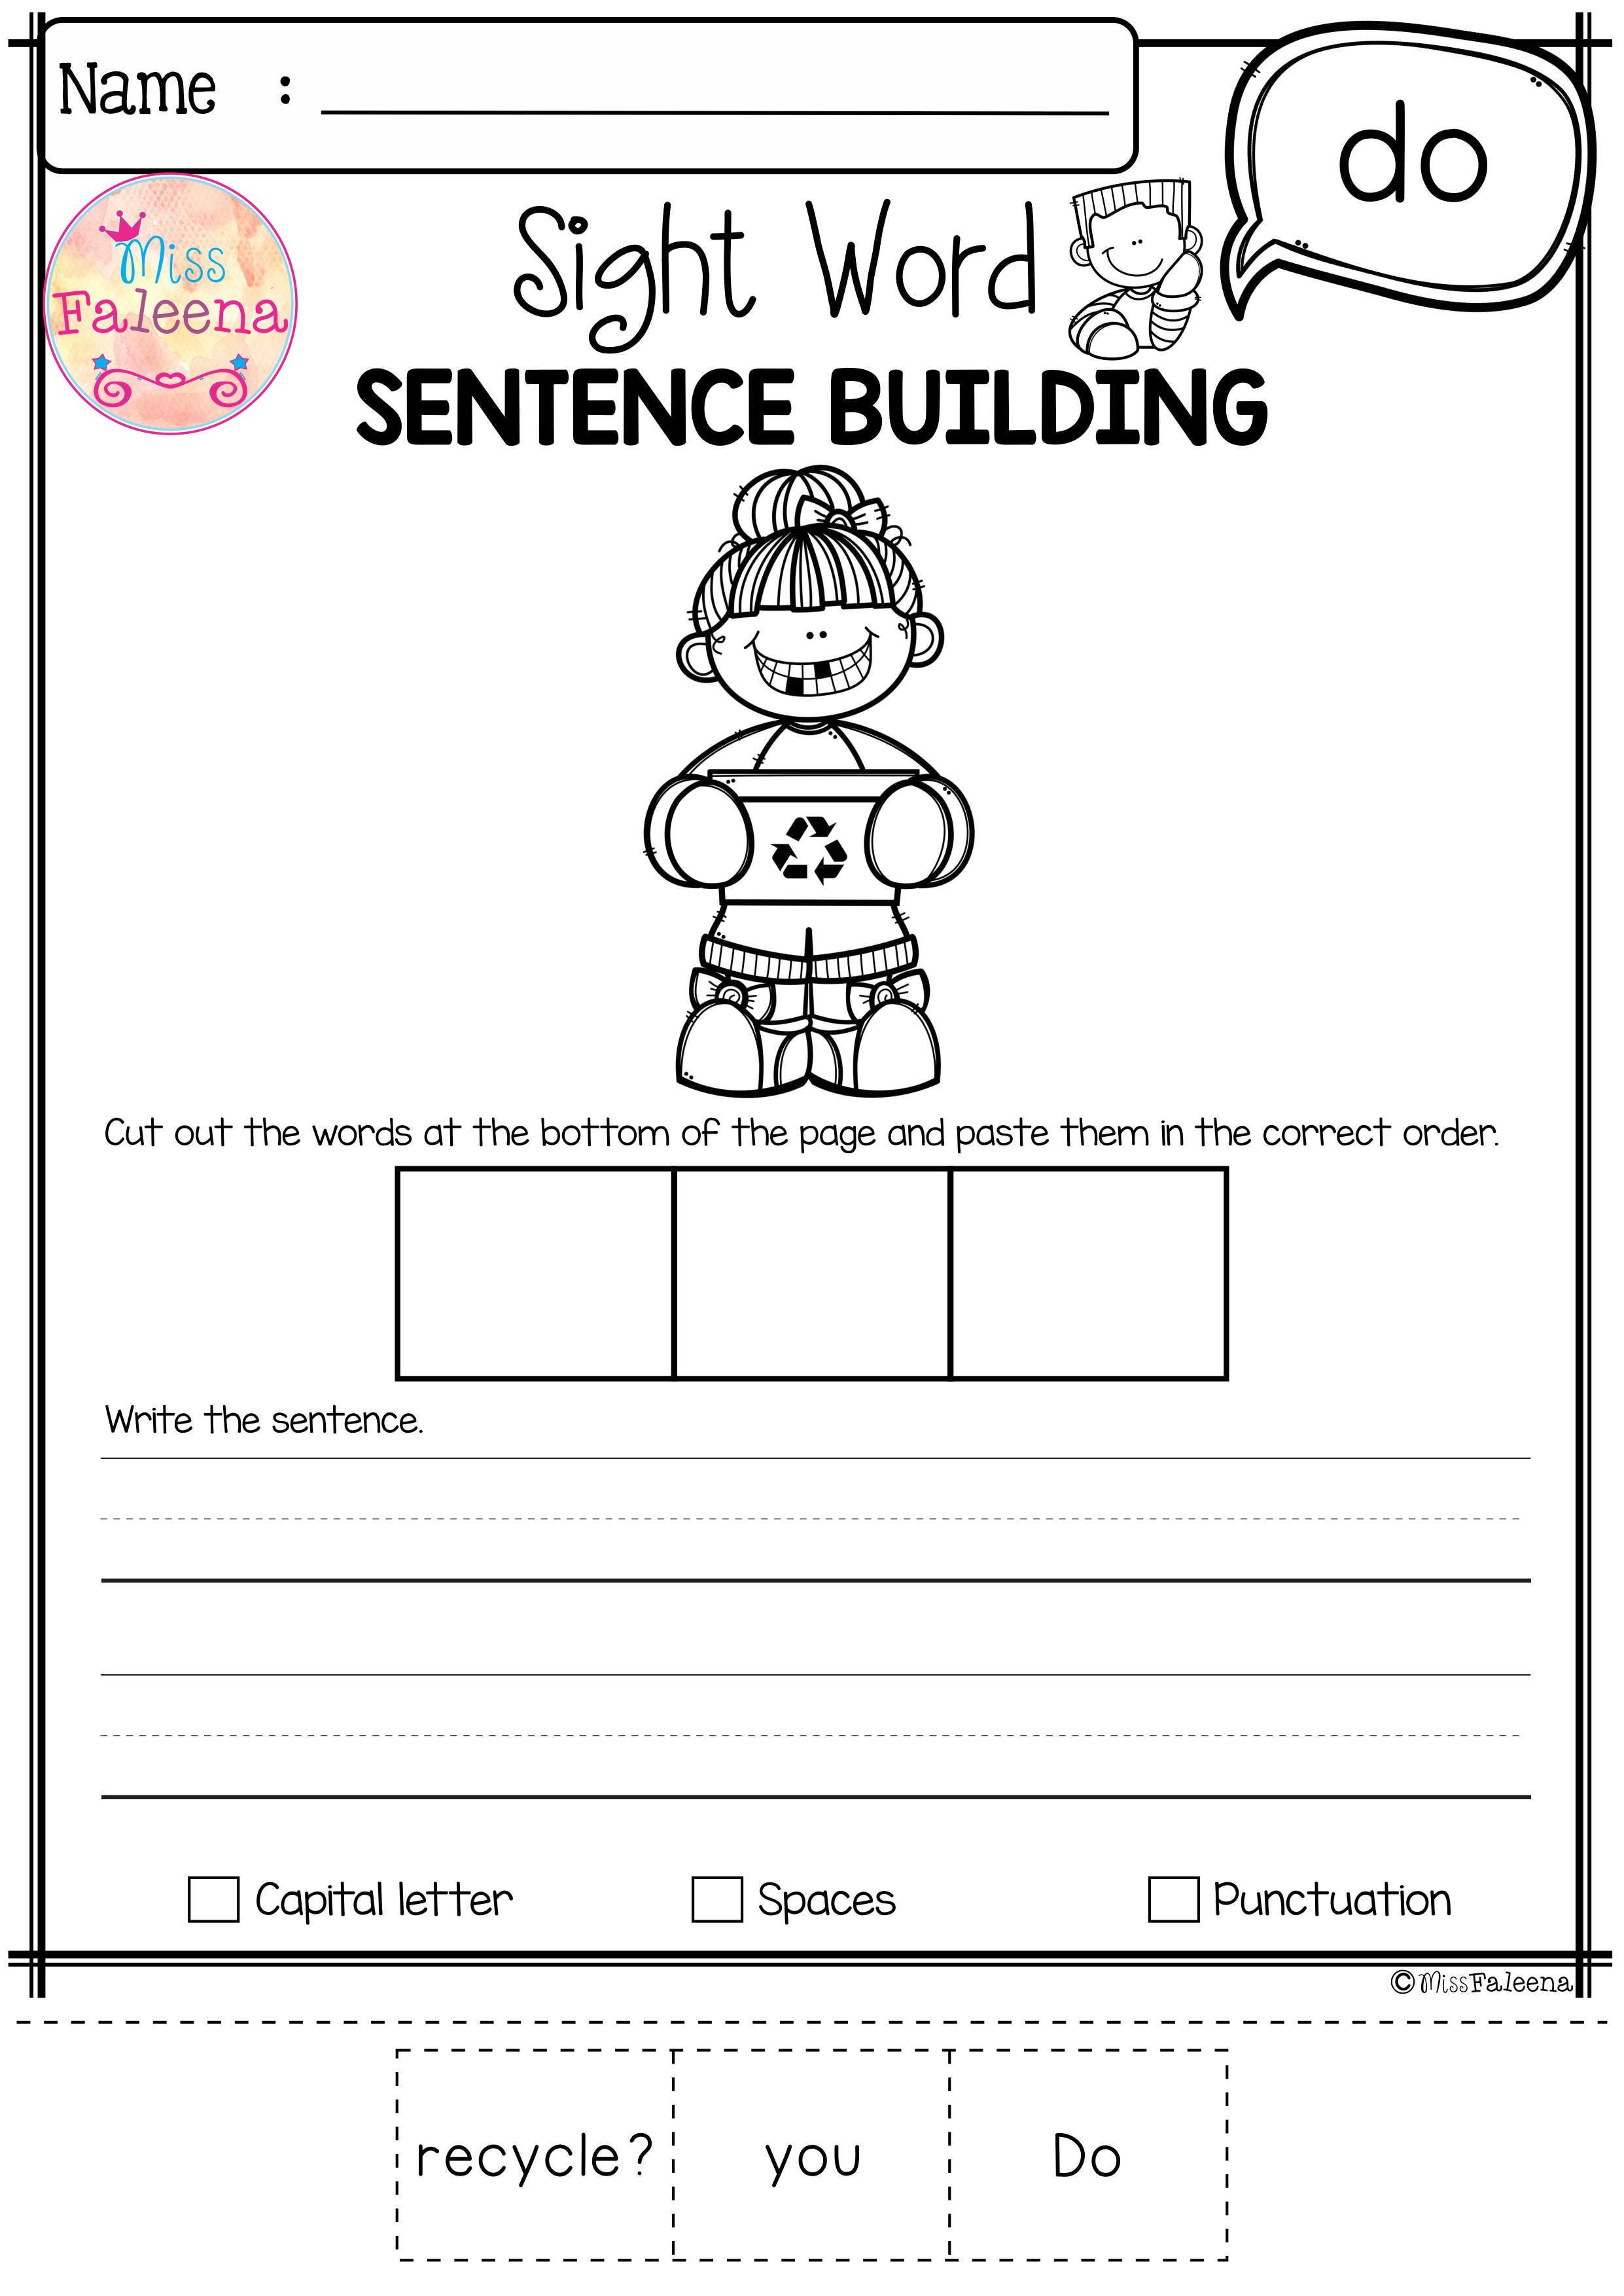 Free Sight Word Sentence Building Has 10 Pages Of Sentence Building Worksheets This Product Wi Sight Words Kindergarten Sentence Building Sight Word Sentences